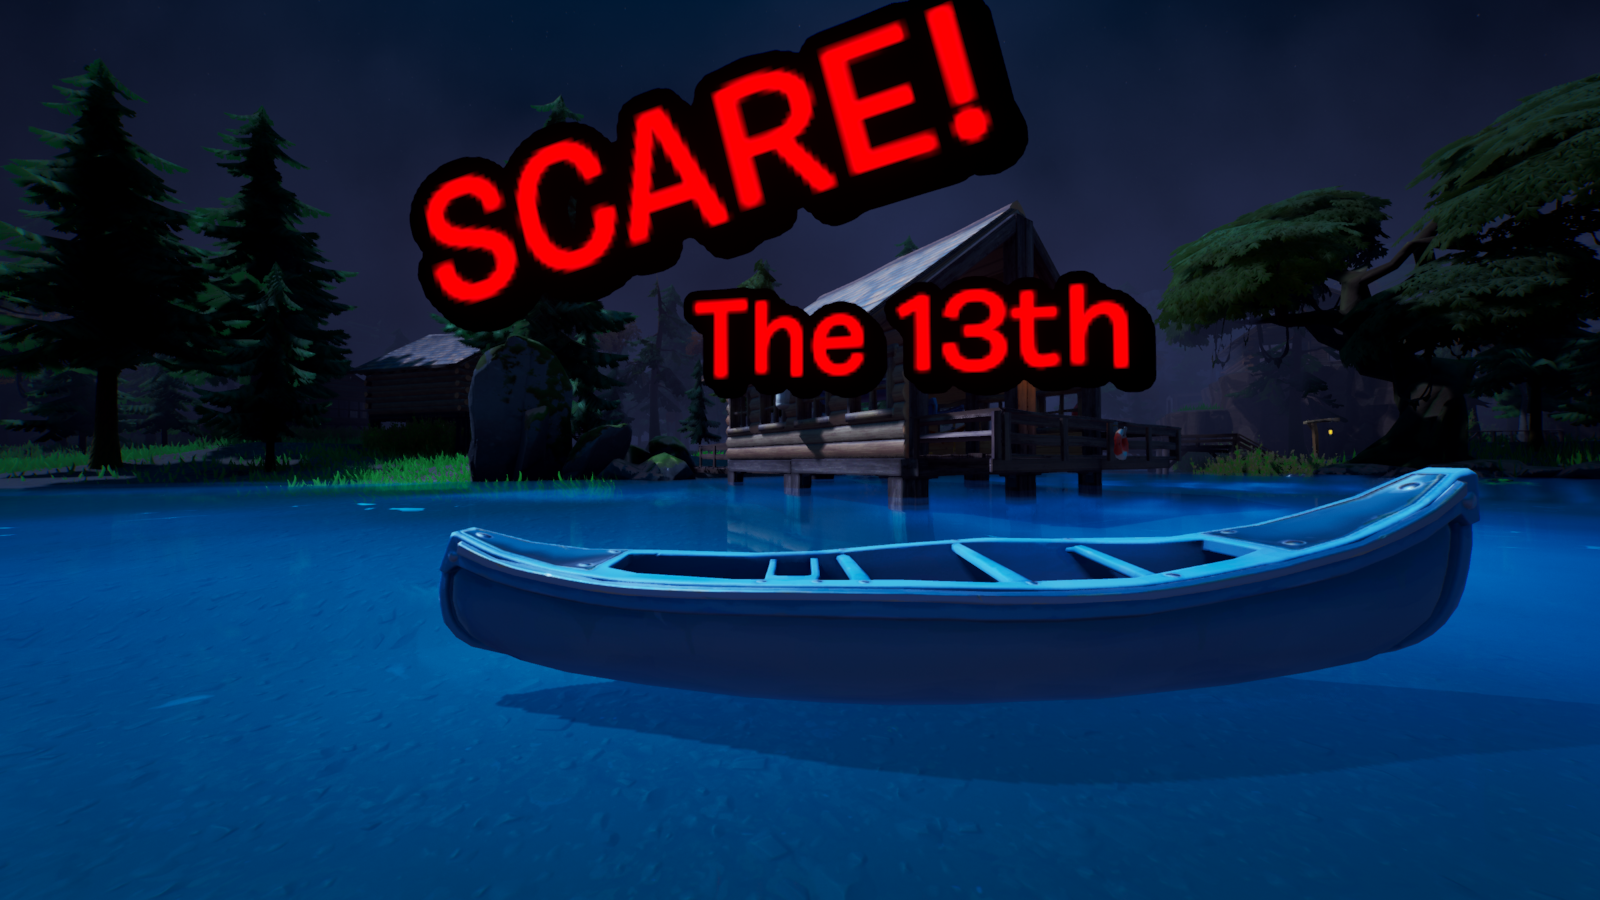 SCARE!: The 13th 5130-0302-4744 by Jxdvn